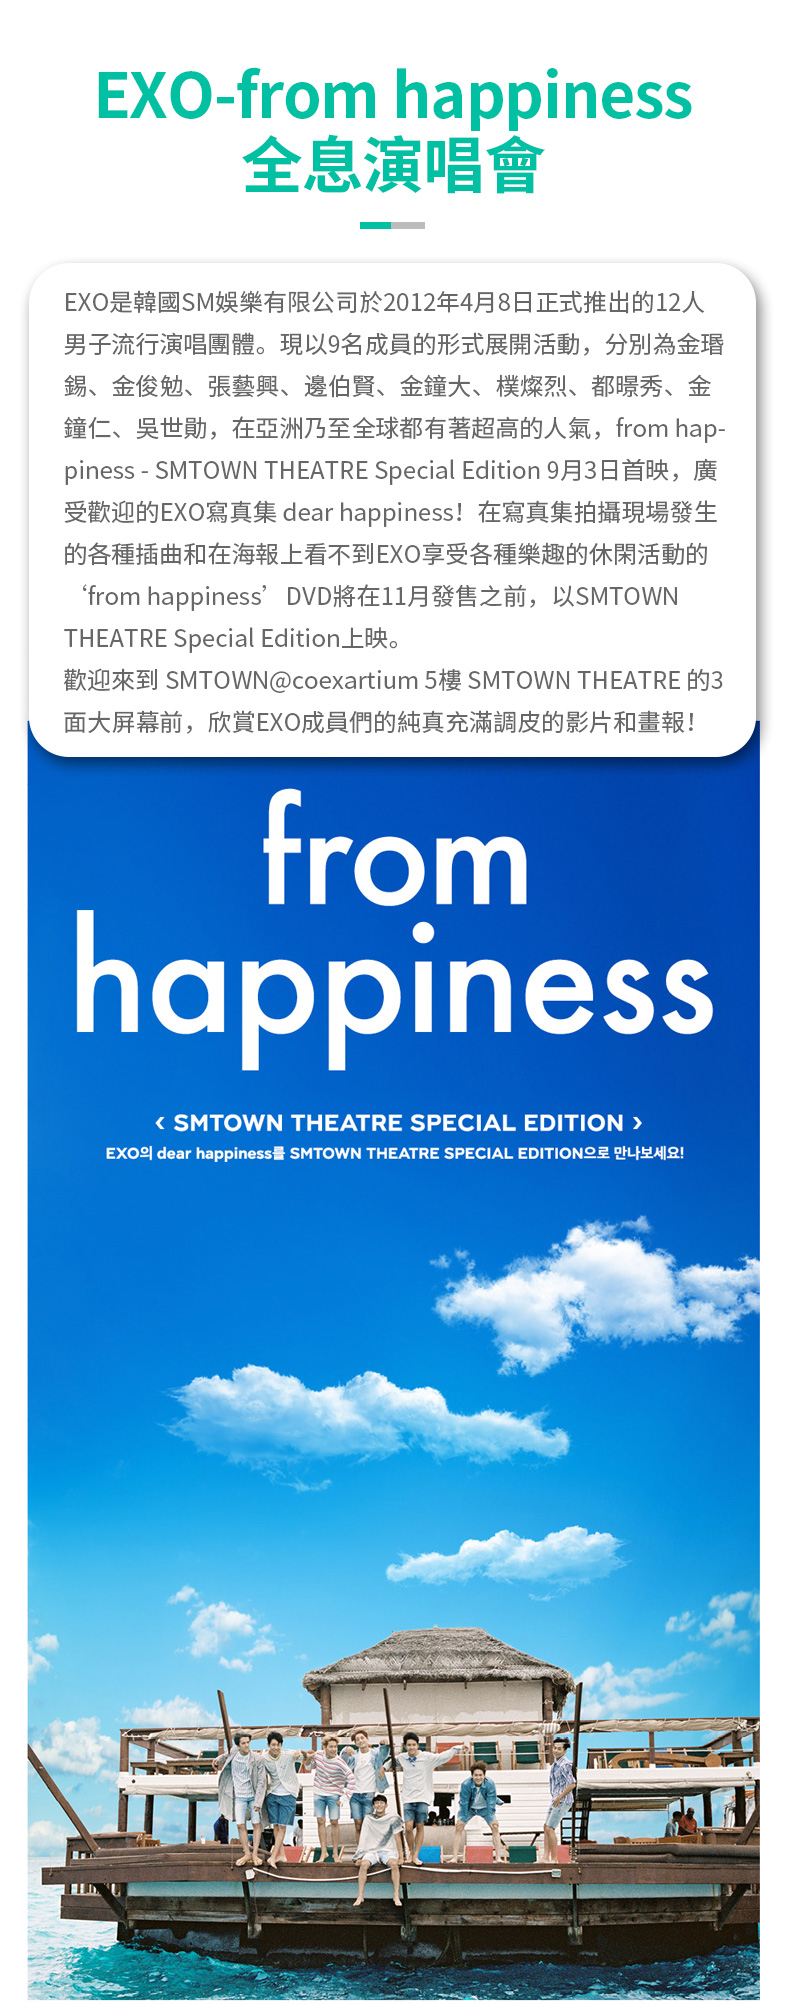 EXO-from-happiness繁_01.jpg